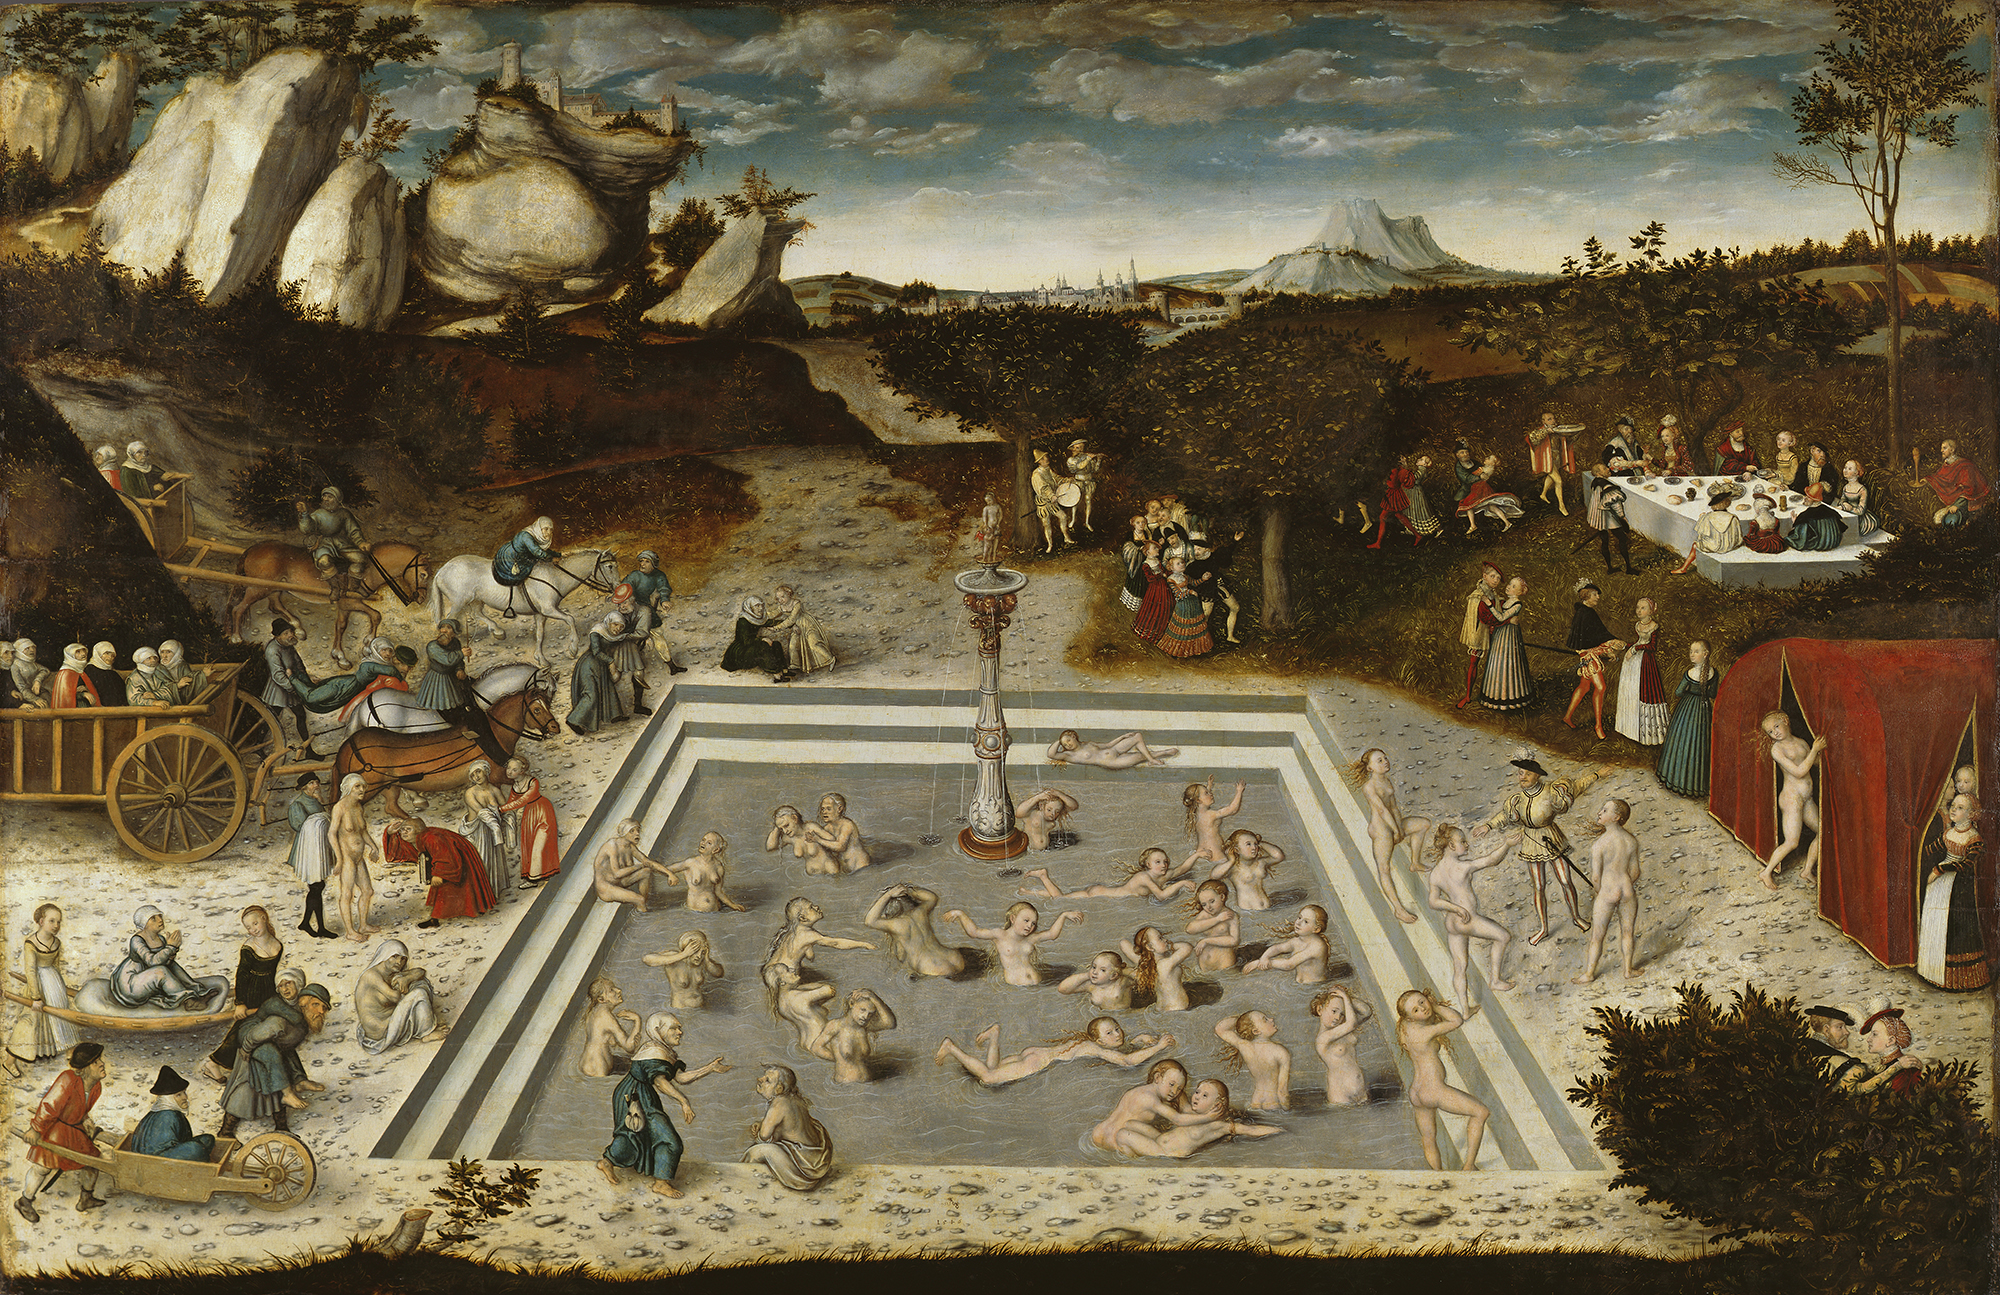 Lucas Cranach - Der Jungbrunnen (The Fountain of Youth), 1564 (Wikimedia Commons)